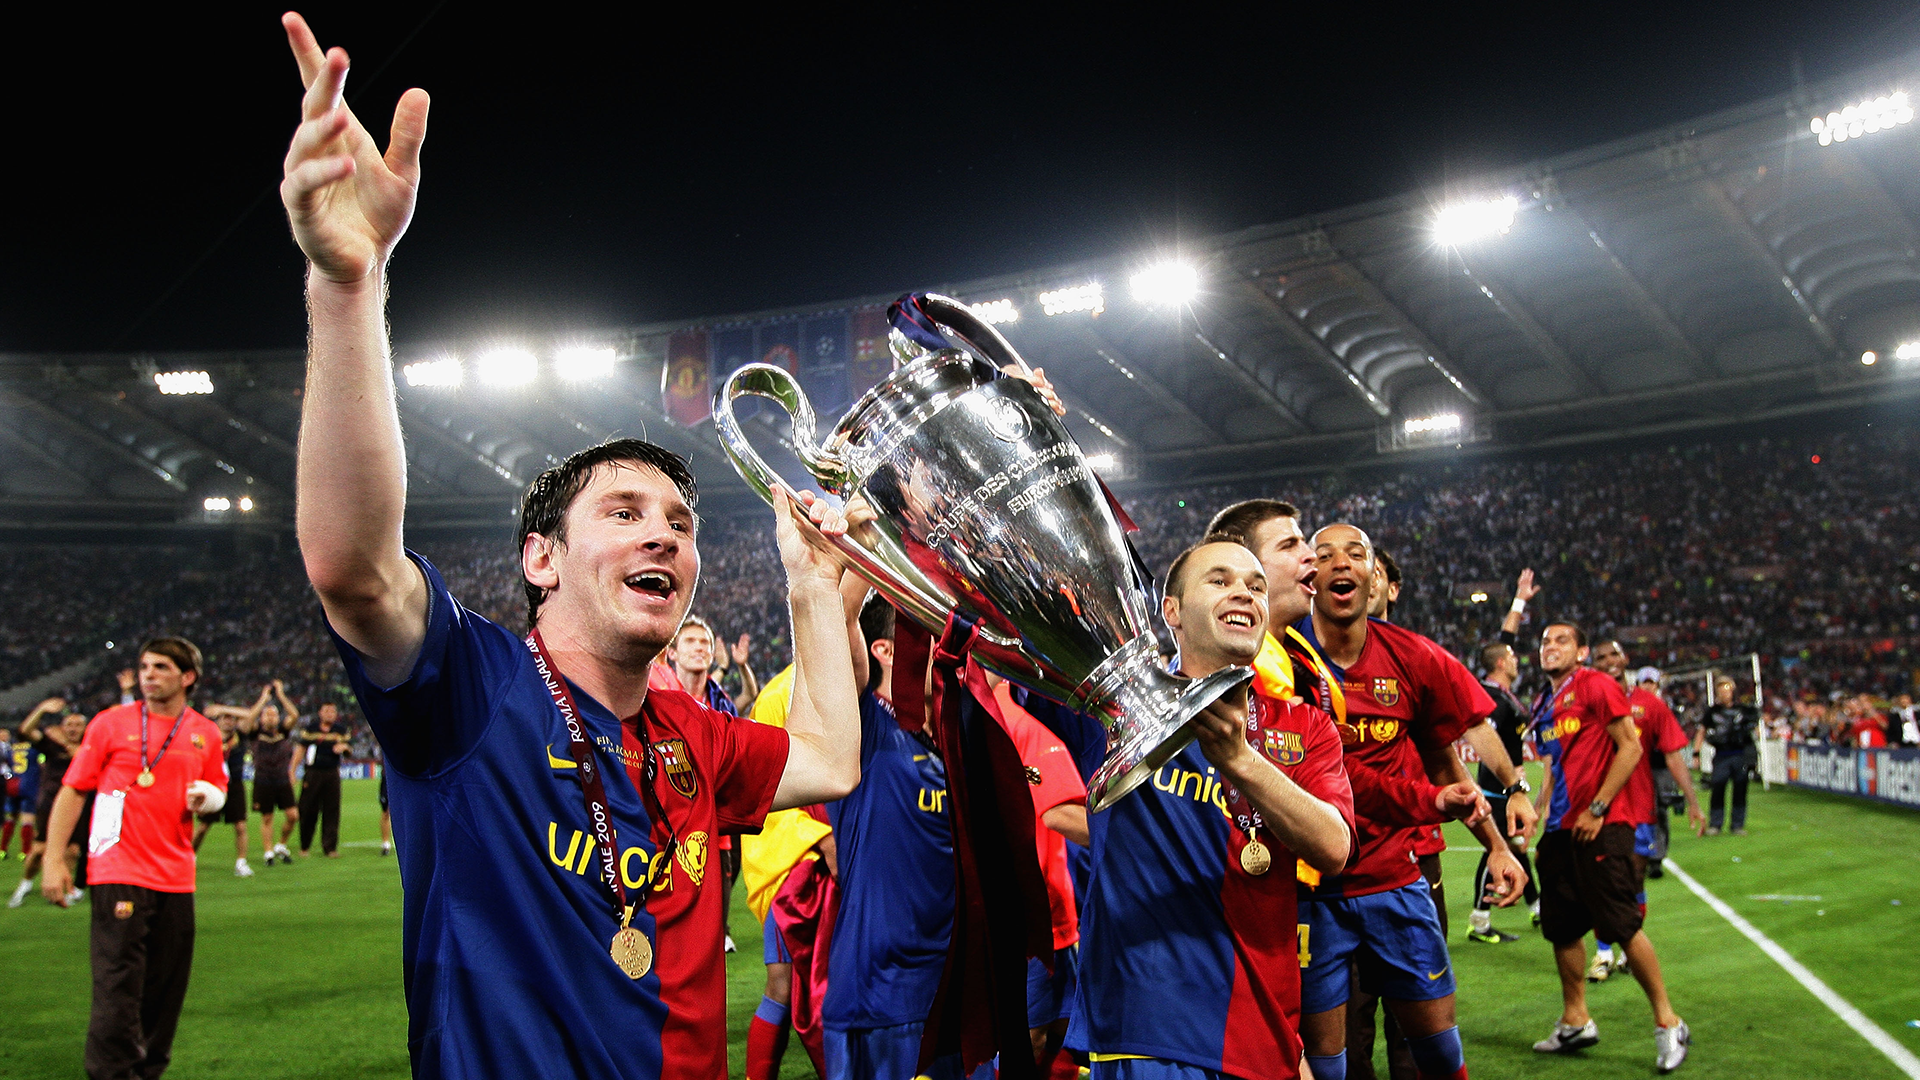 Barcelona 2009 Champions League winners